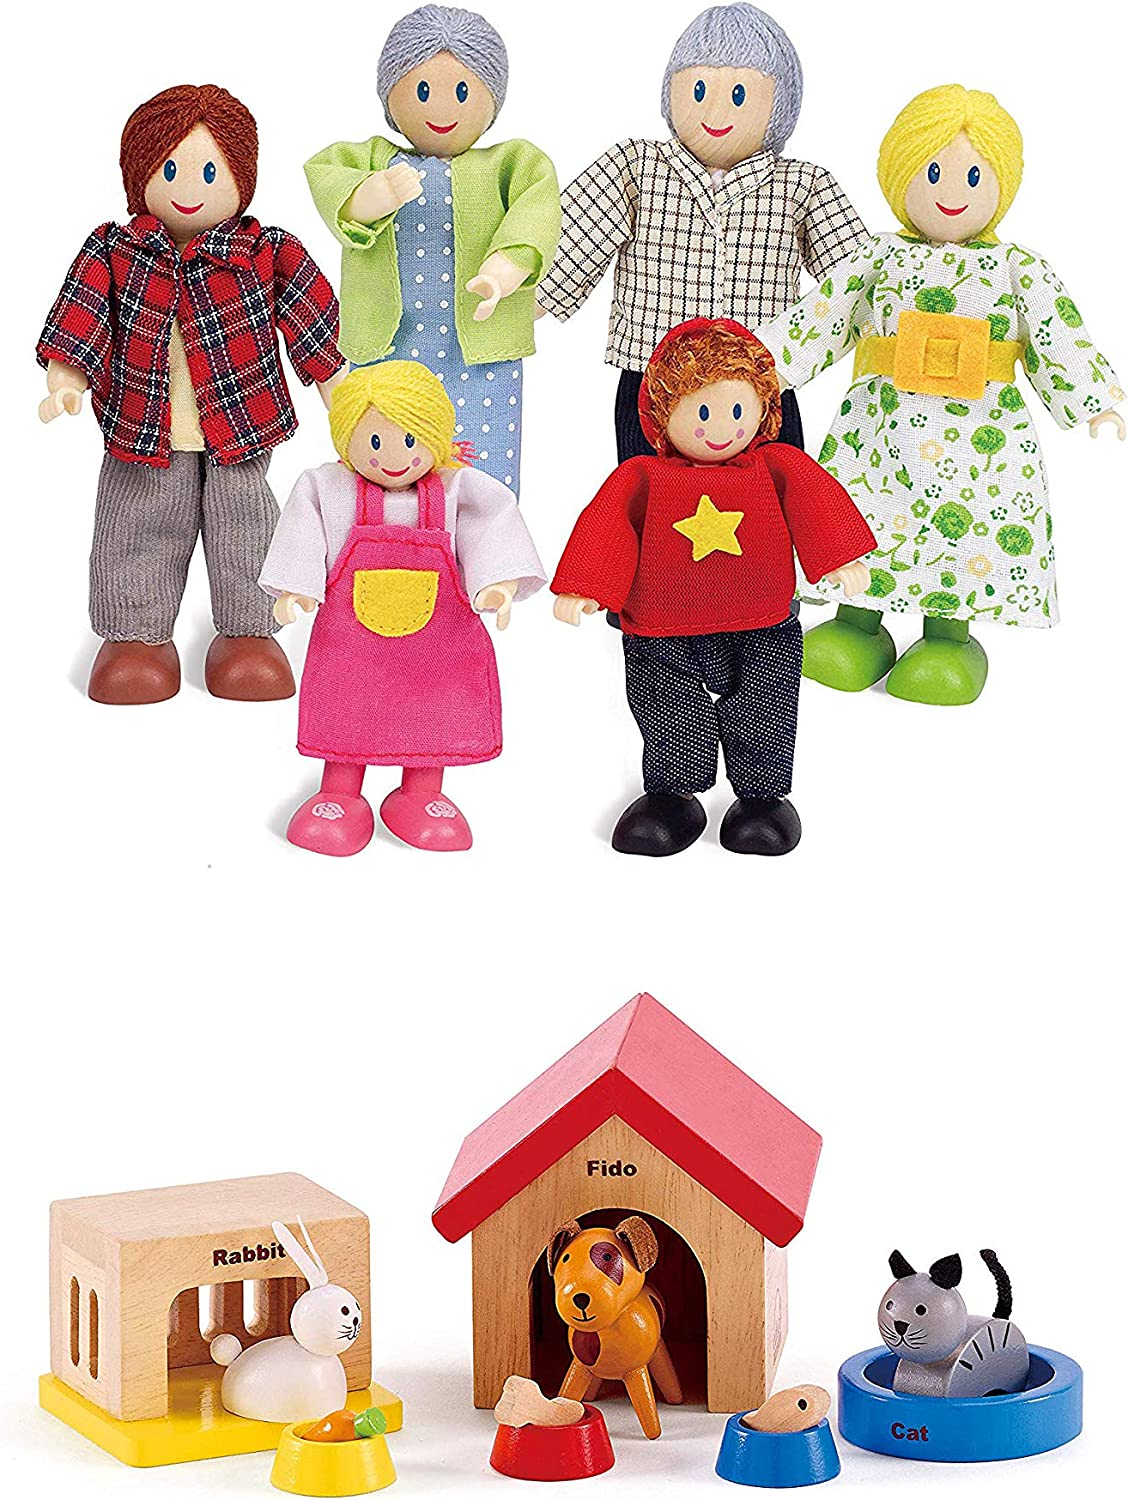 Hape Happy Family Dollhouse with Pet Set Award Winning Doll Family Set, Unique Accessory for Kid's Wooden Dolls House, Imaginative Play Toy, 6 Family Figures, Adults 4.3